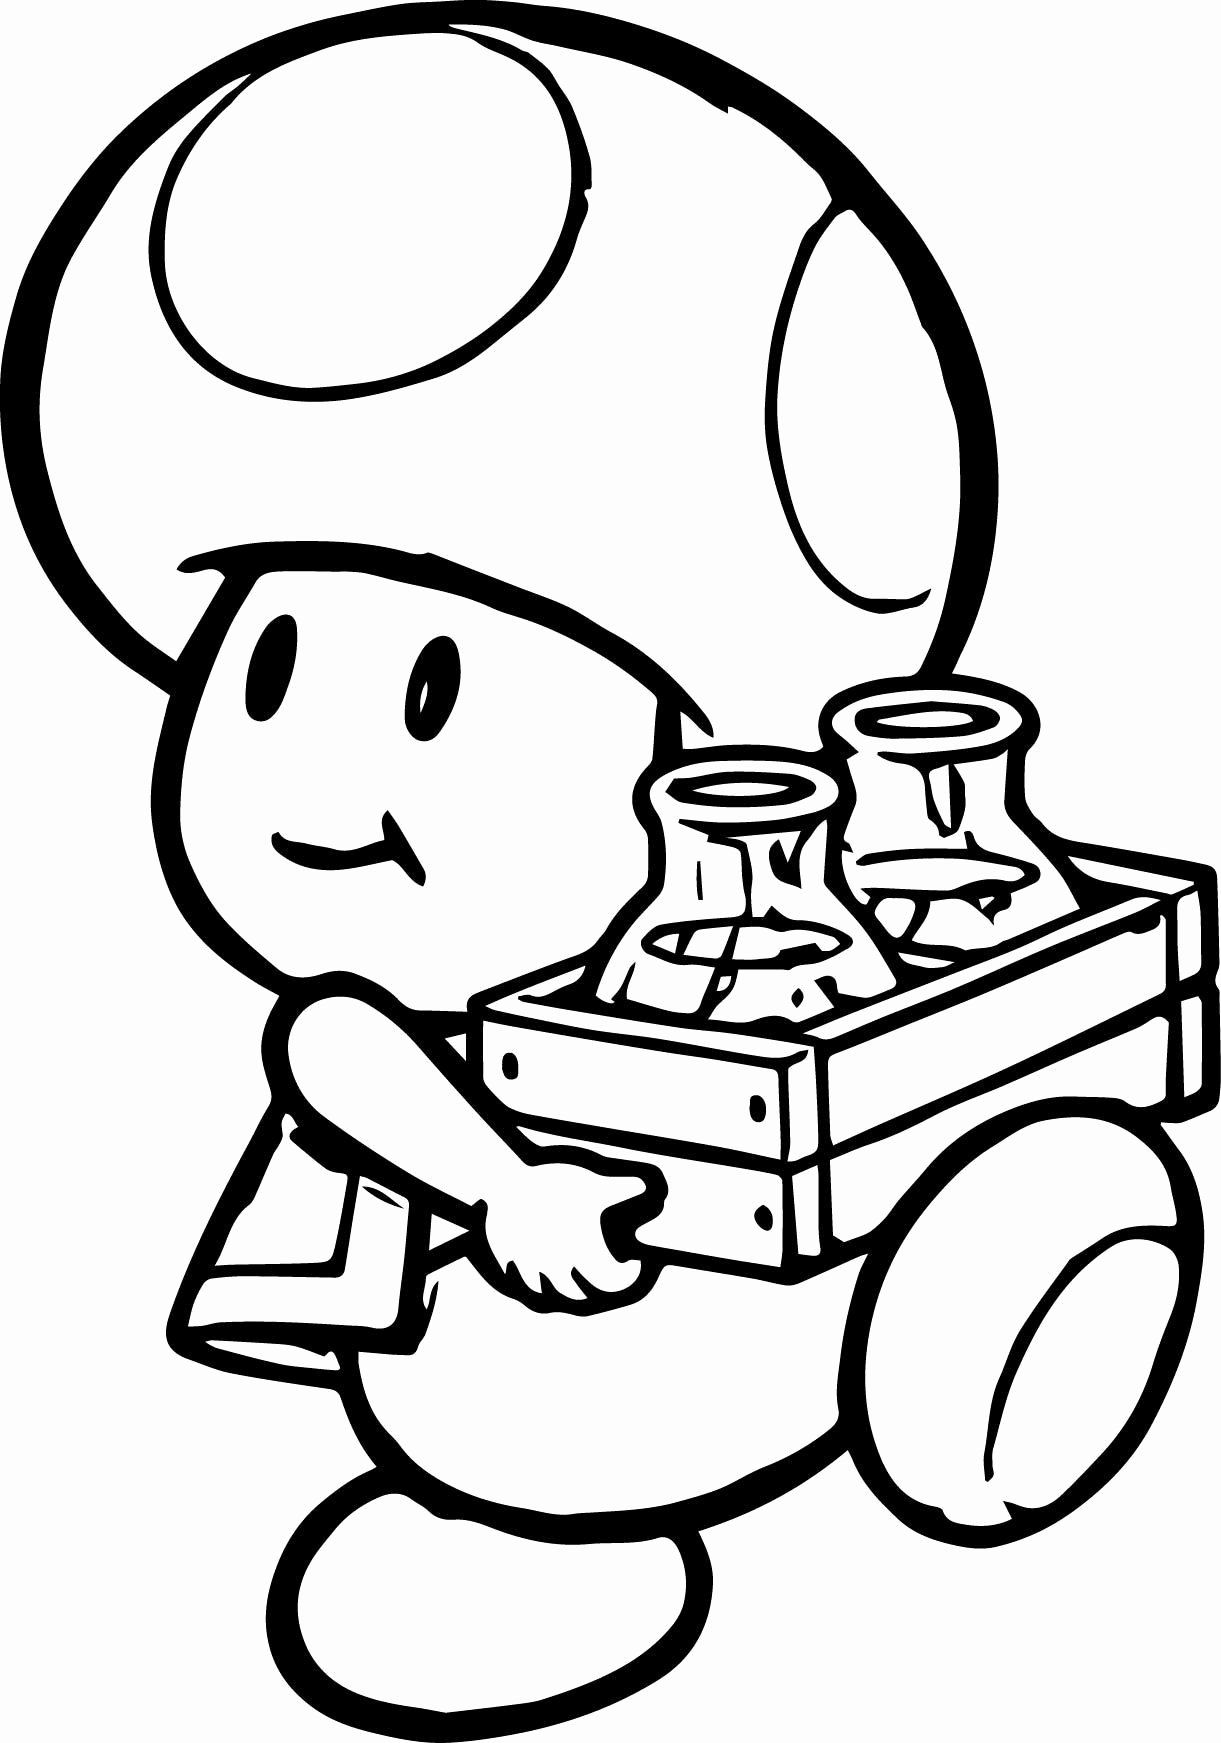 Pin By Lady Kukachu On Coloring Pages Super Mario Coloring Pages